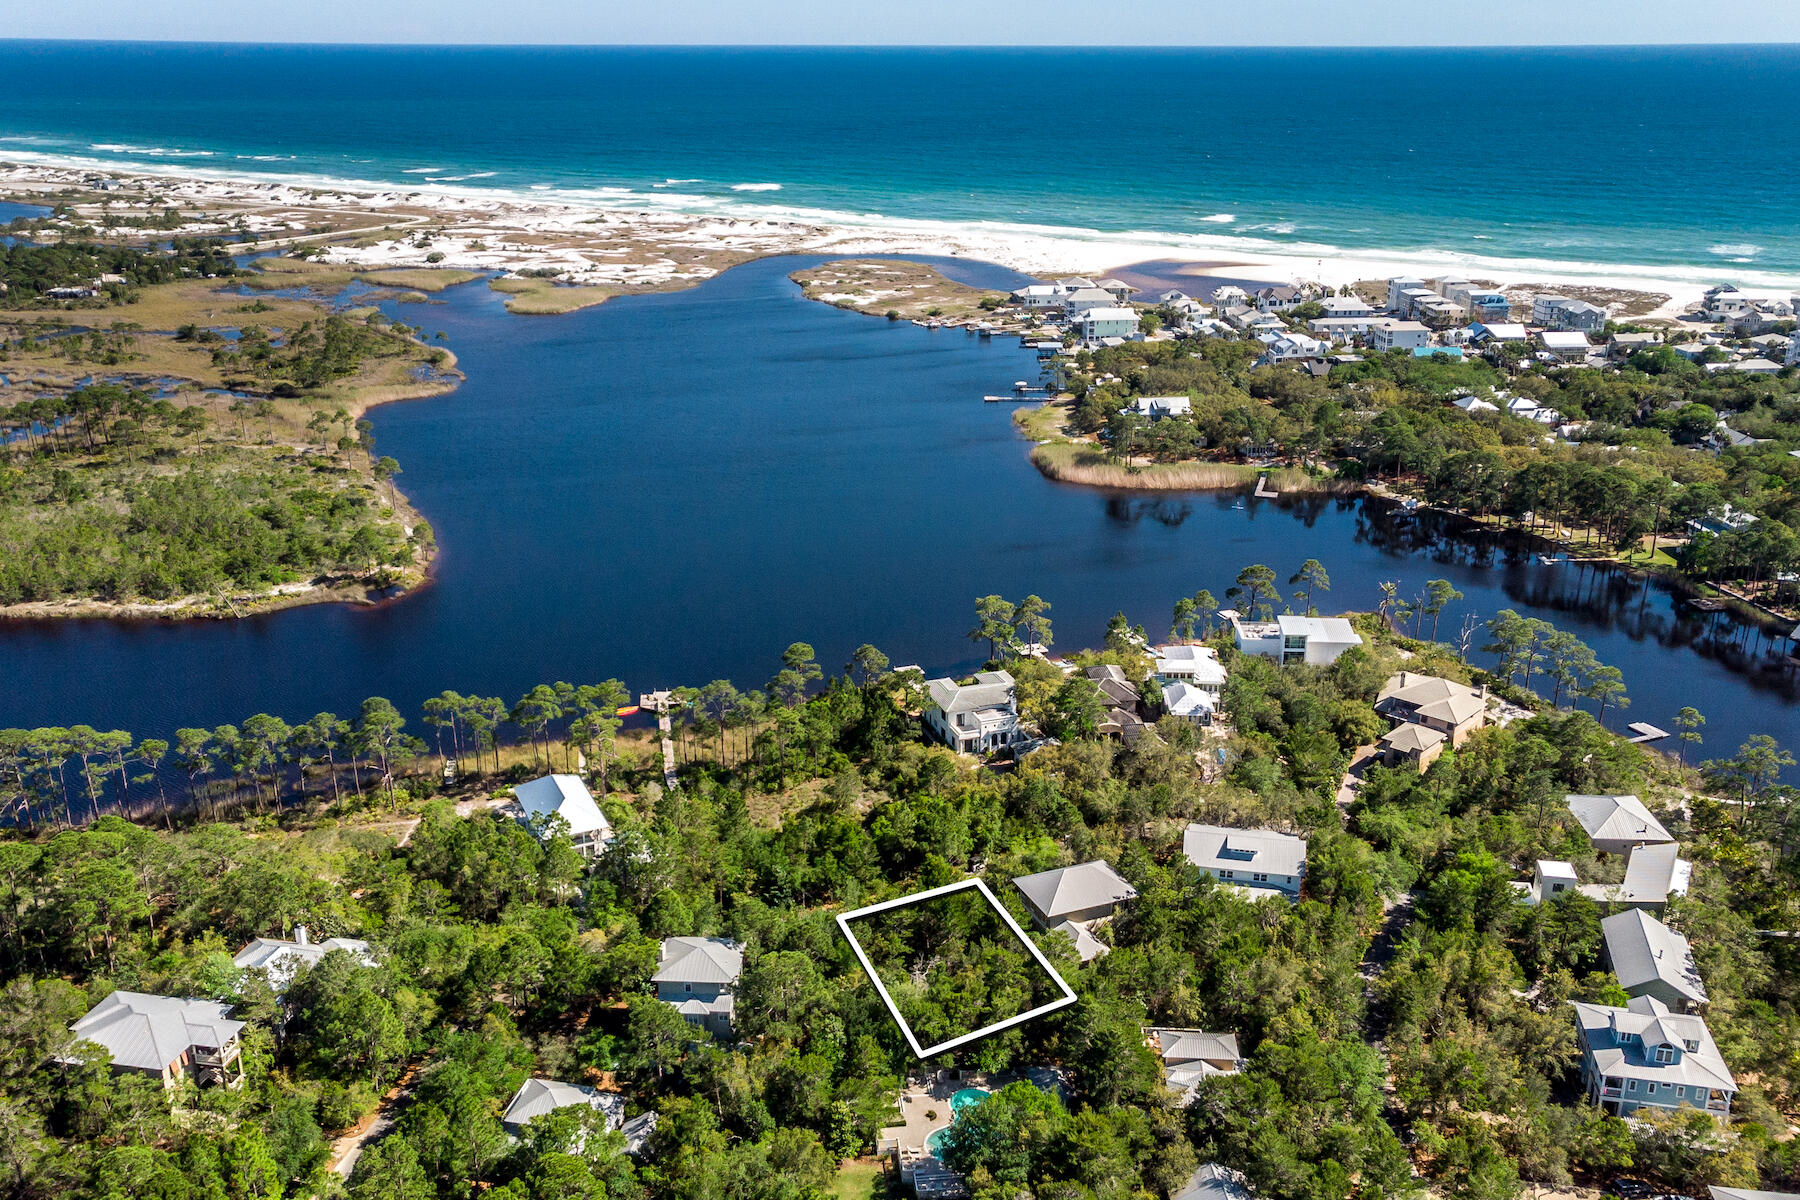 Welcome to Lakeplace in Grayton Beach. This private, gated, short-term rental restricted community is just northeast of historic Grayton Beach and within walking distance of fabulous restaurants and amenities. This is currently the only vacant lot available in the greater Grayton Beach area. This incredible homesite is just one row off of Western Lake and directly across from the community dock. Lake views are achievable at 20' with gulf views at 30'. The neighborhood consists of 50 parcels nestled amongst well developed trees and foliage.Sellers have preliminary plans with approved neighborhood architect, Dan Martin, for a 3-story 3,150 square foot home that would capture views of both the gulf and Western Lake.